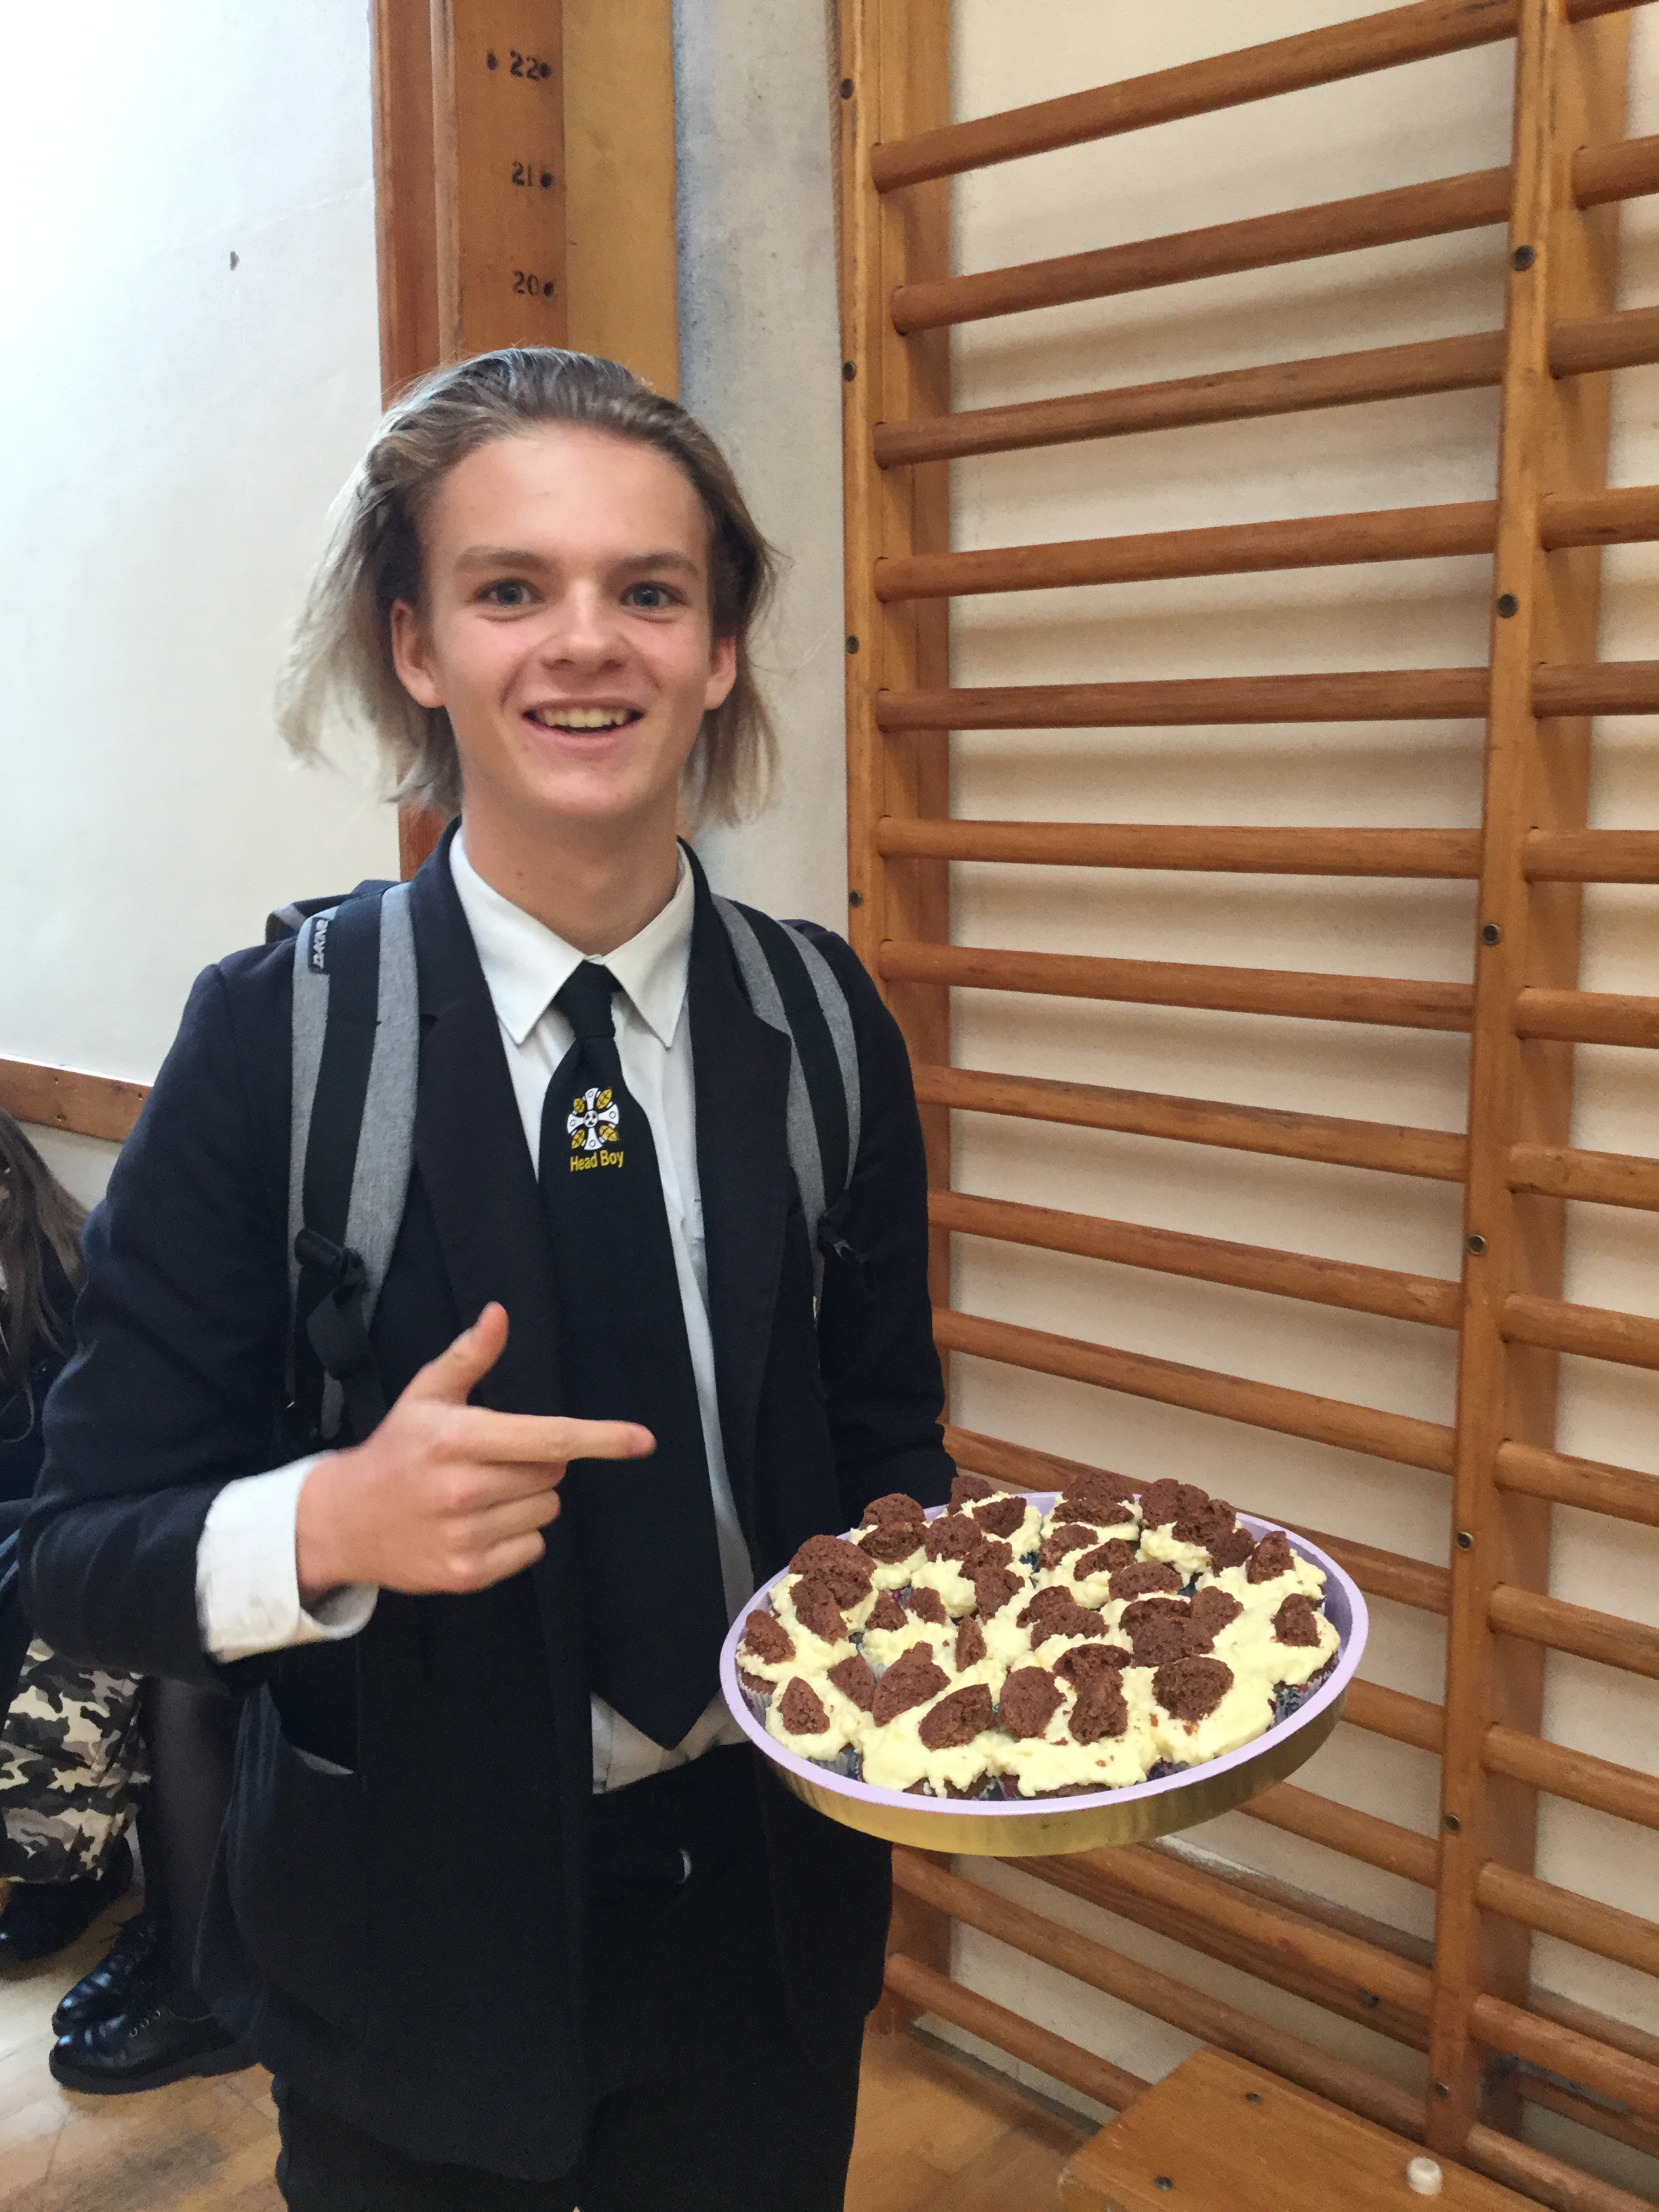 Sol, Head Boy, with his selection of cakes for sale.